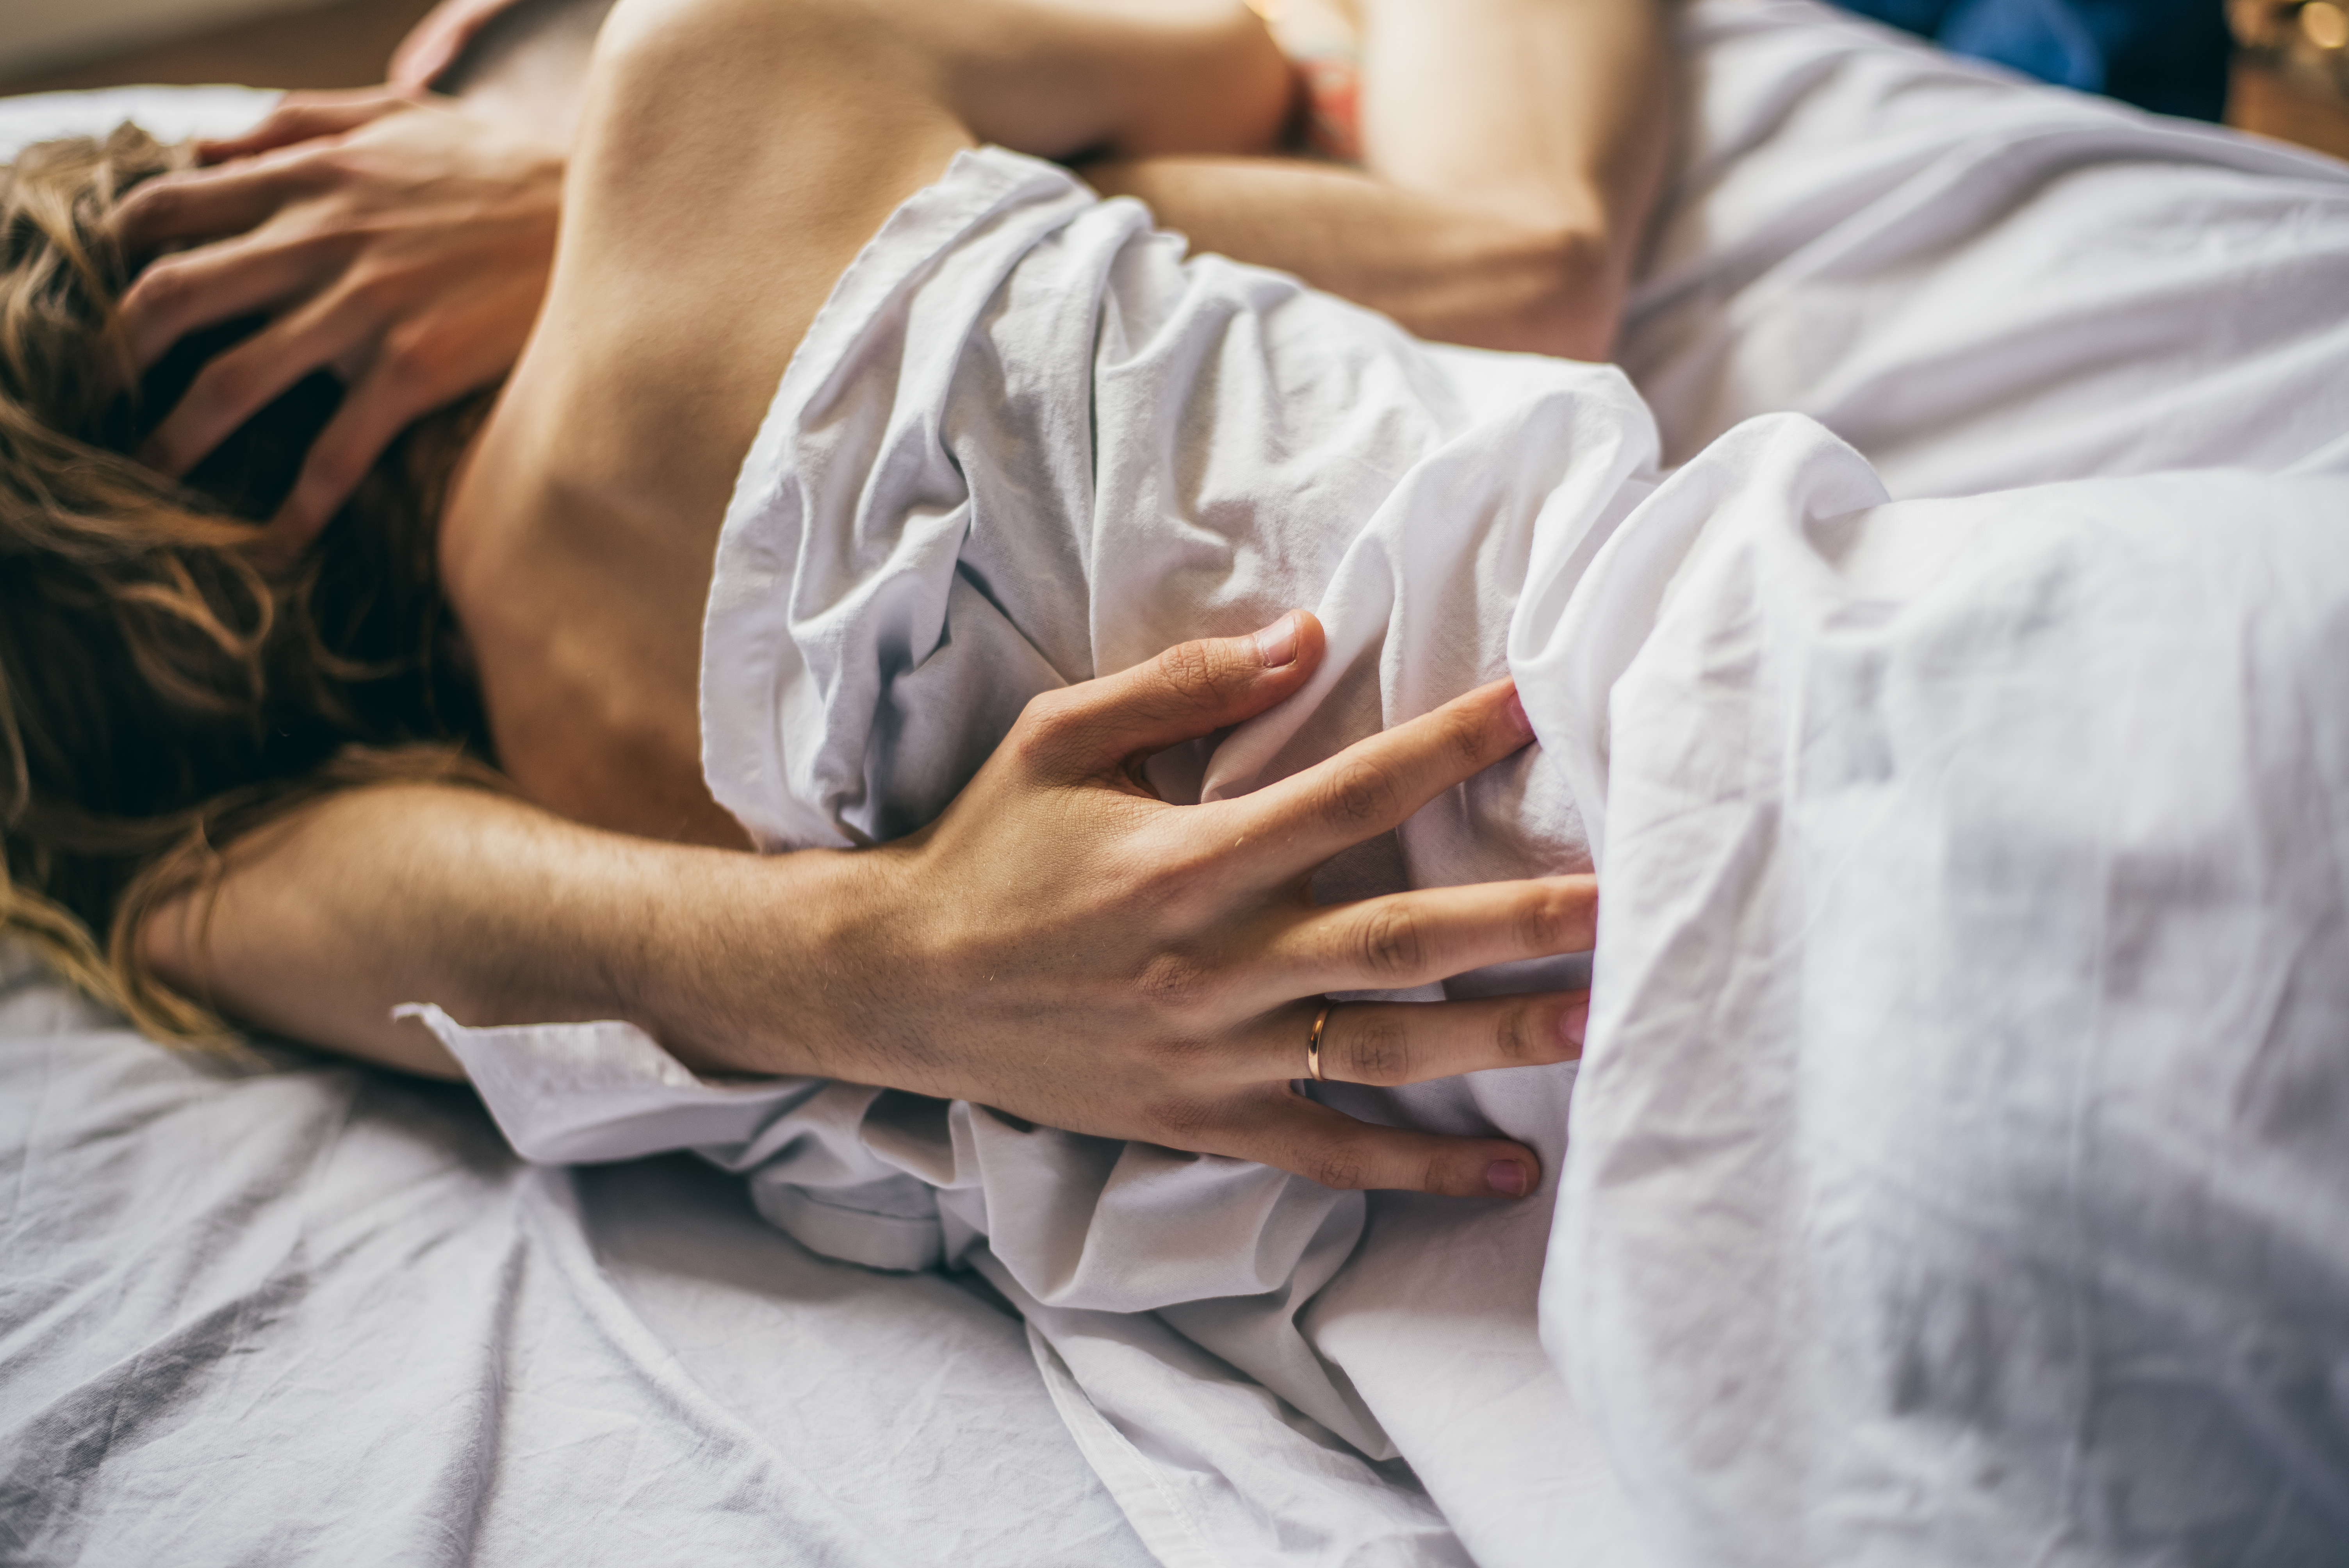 Gay people don't rush sex as often and it helps the relationship